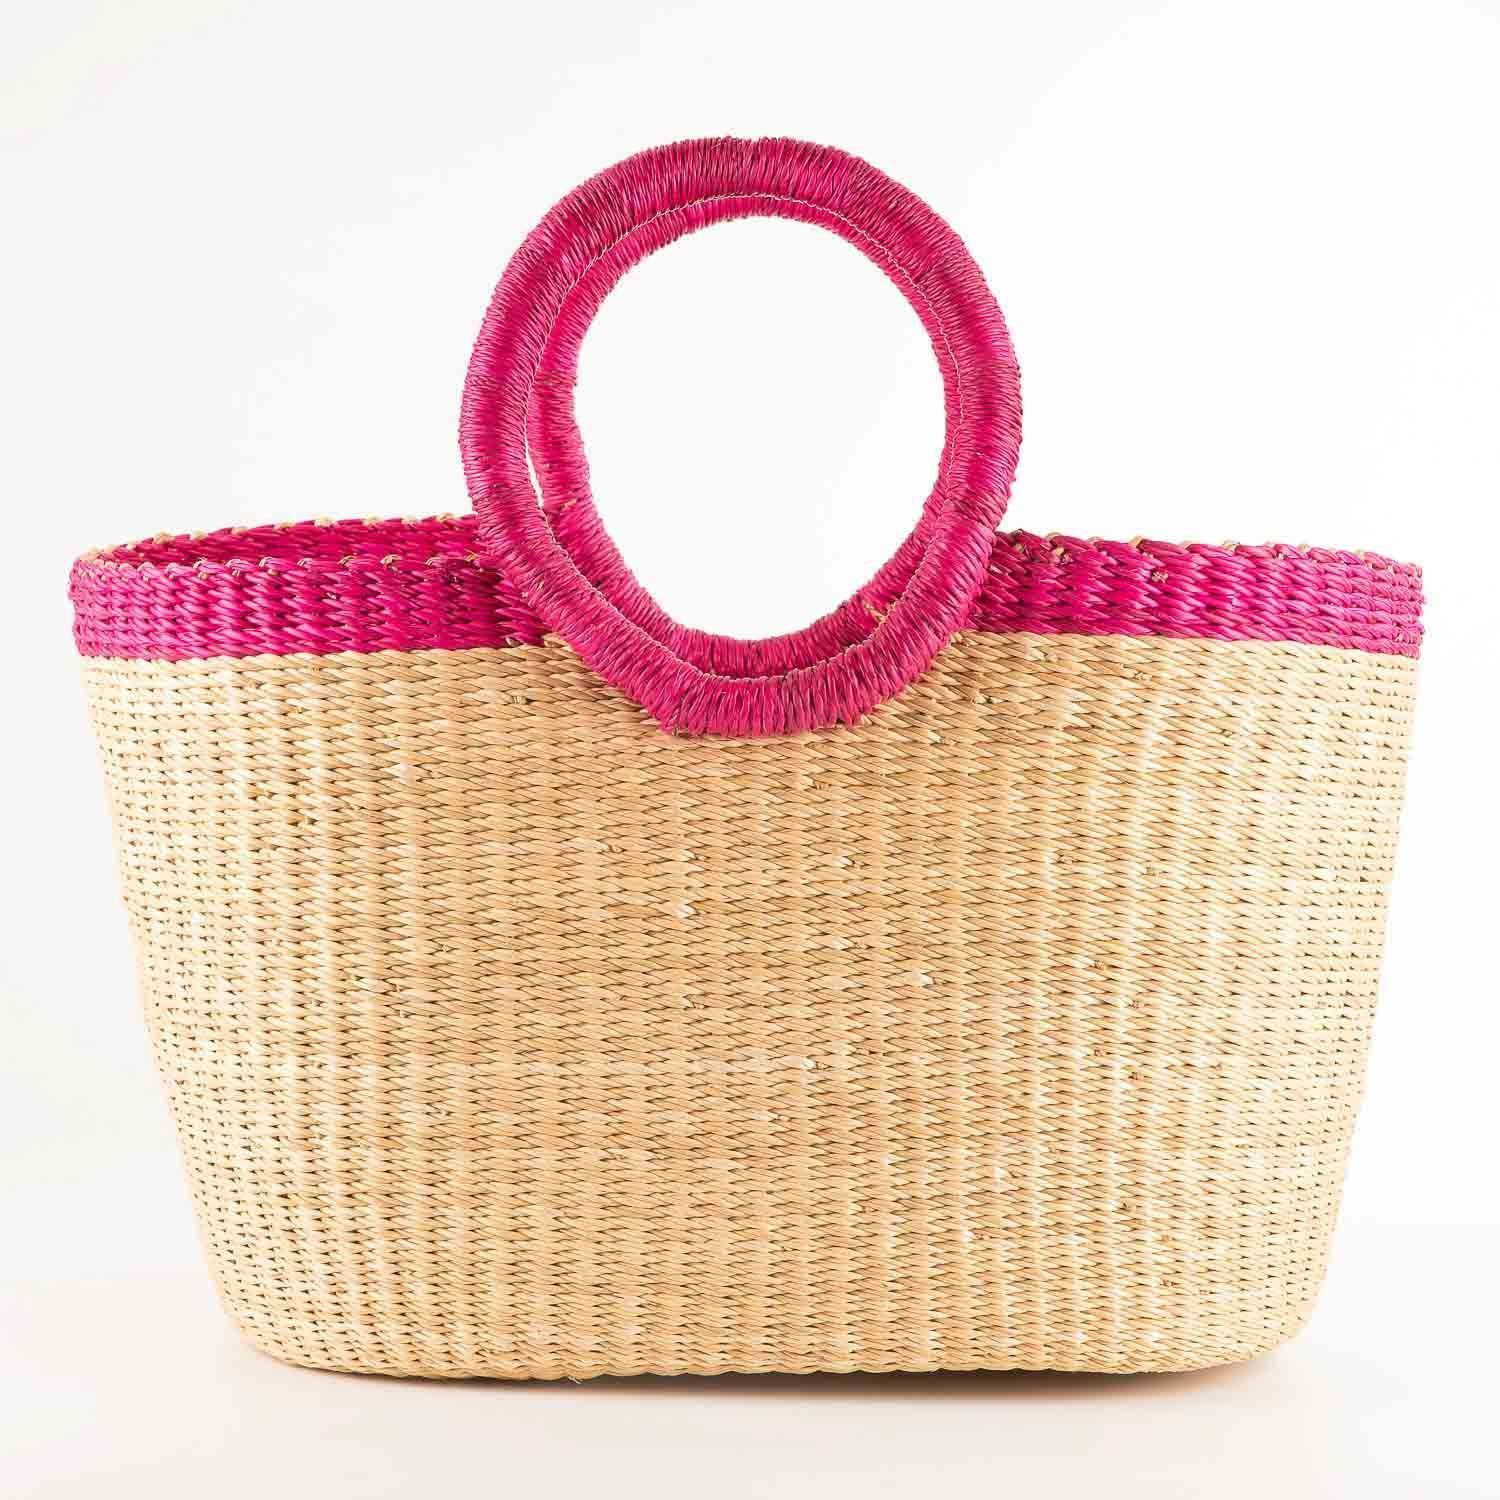 Oval Pink Rim Bolga Shopping Basket #pinkrims Oval Pink Rim Bolga Shopping Basket #pinkrims Oval Pink Rim Bolga Shopping Basket #pinkrims Oval Pink Rim Bolga Shopping Basket #pinkrims Oval Pink Rim Bolga Shopping Basket #pinkrims Oval Pink Rim Bolga Shopping Basket #pinkrims Oval Pink Rim Bolga Shopping Basket #pinkrims Oval Pink Rim Bolga Shopping Basket #pinkrims